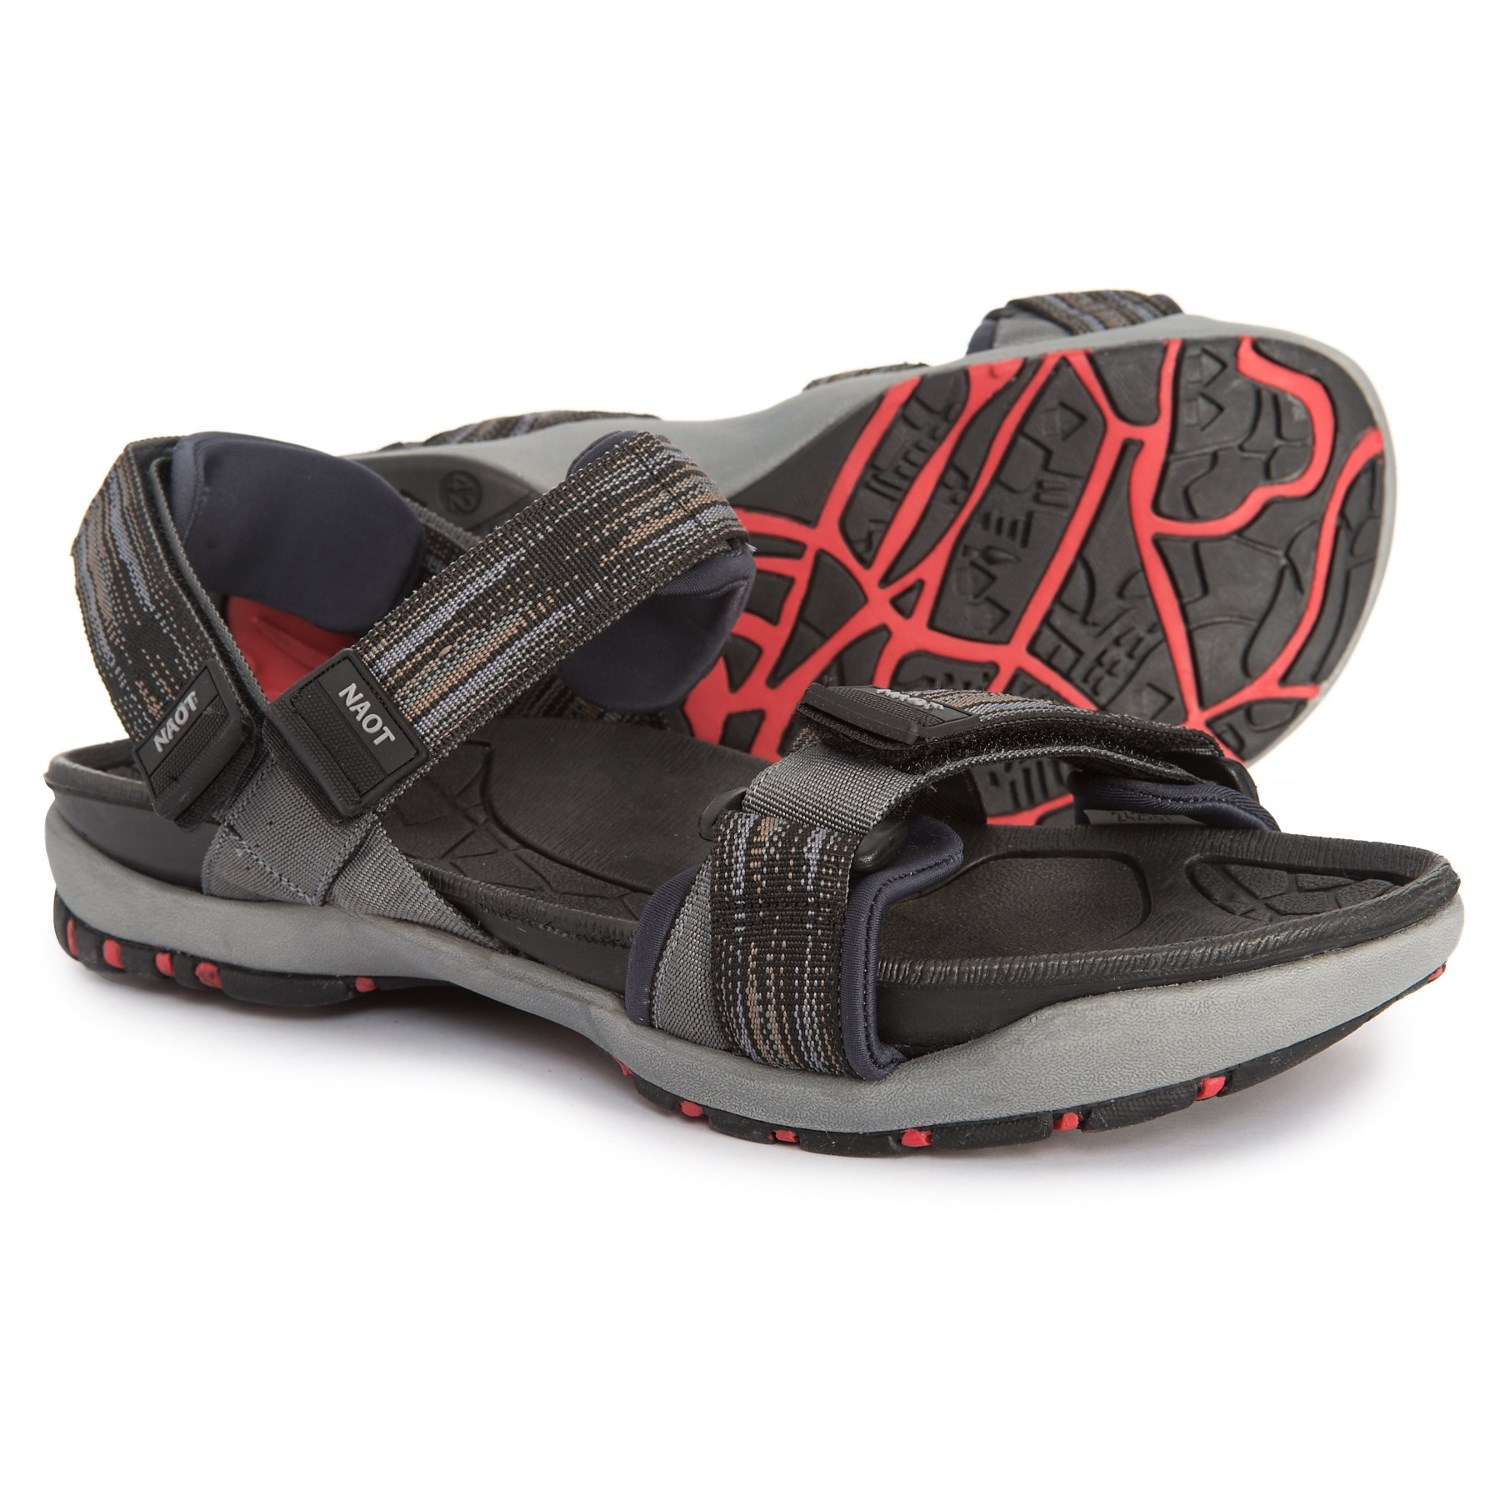 5fe37425aa17 Naot Course River Sandals (For Men) in Black Gray Material ...